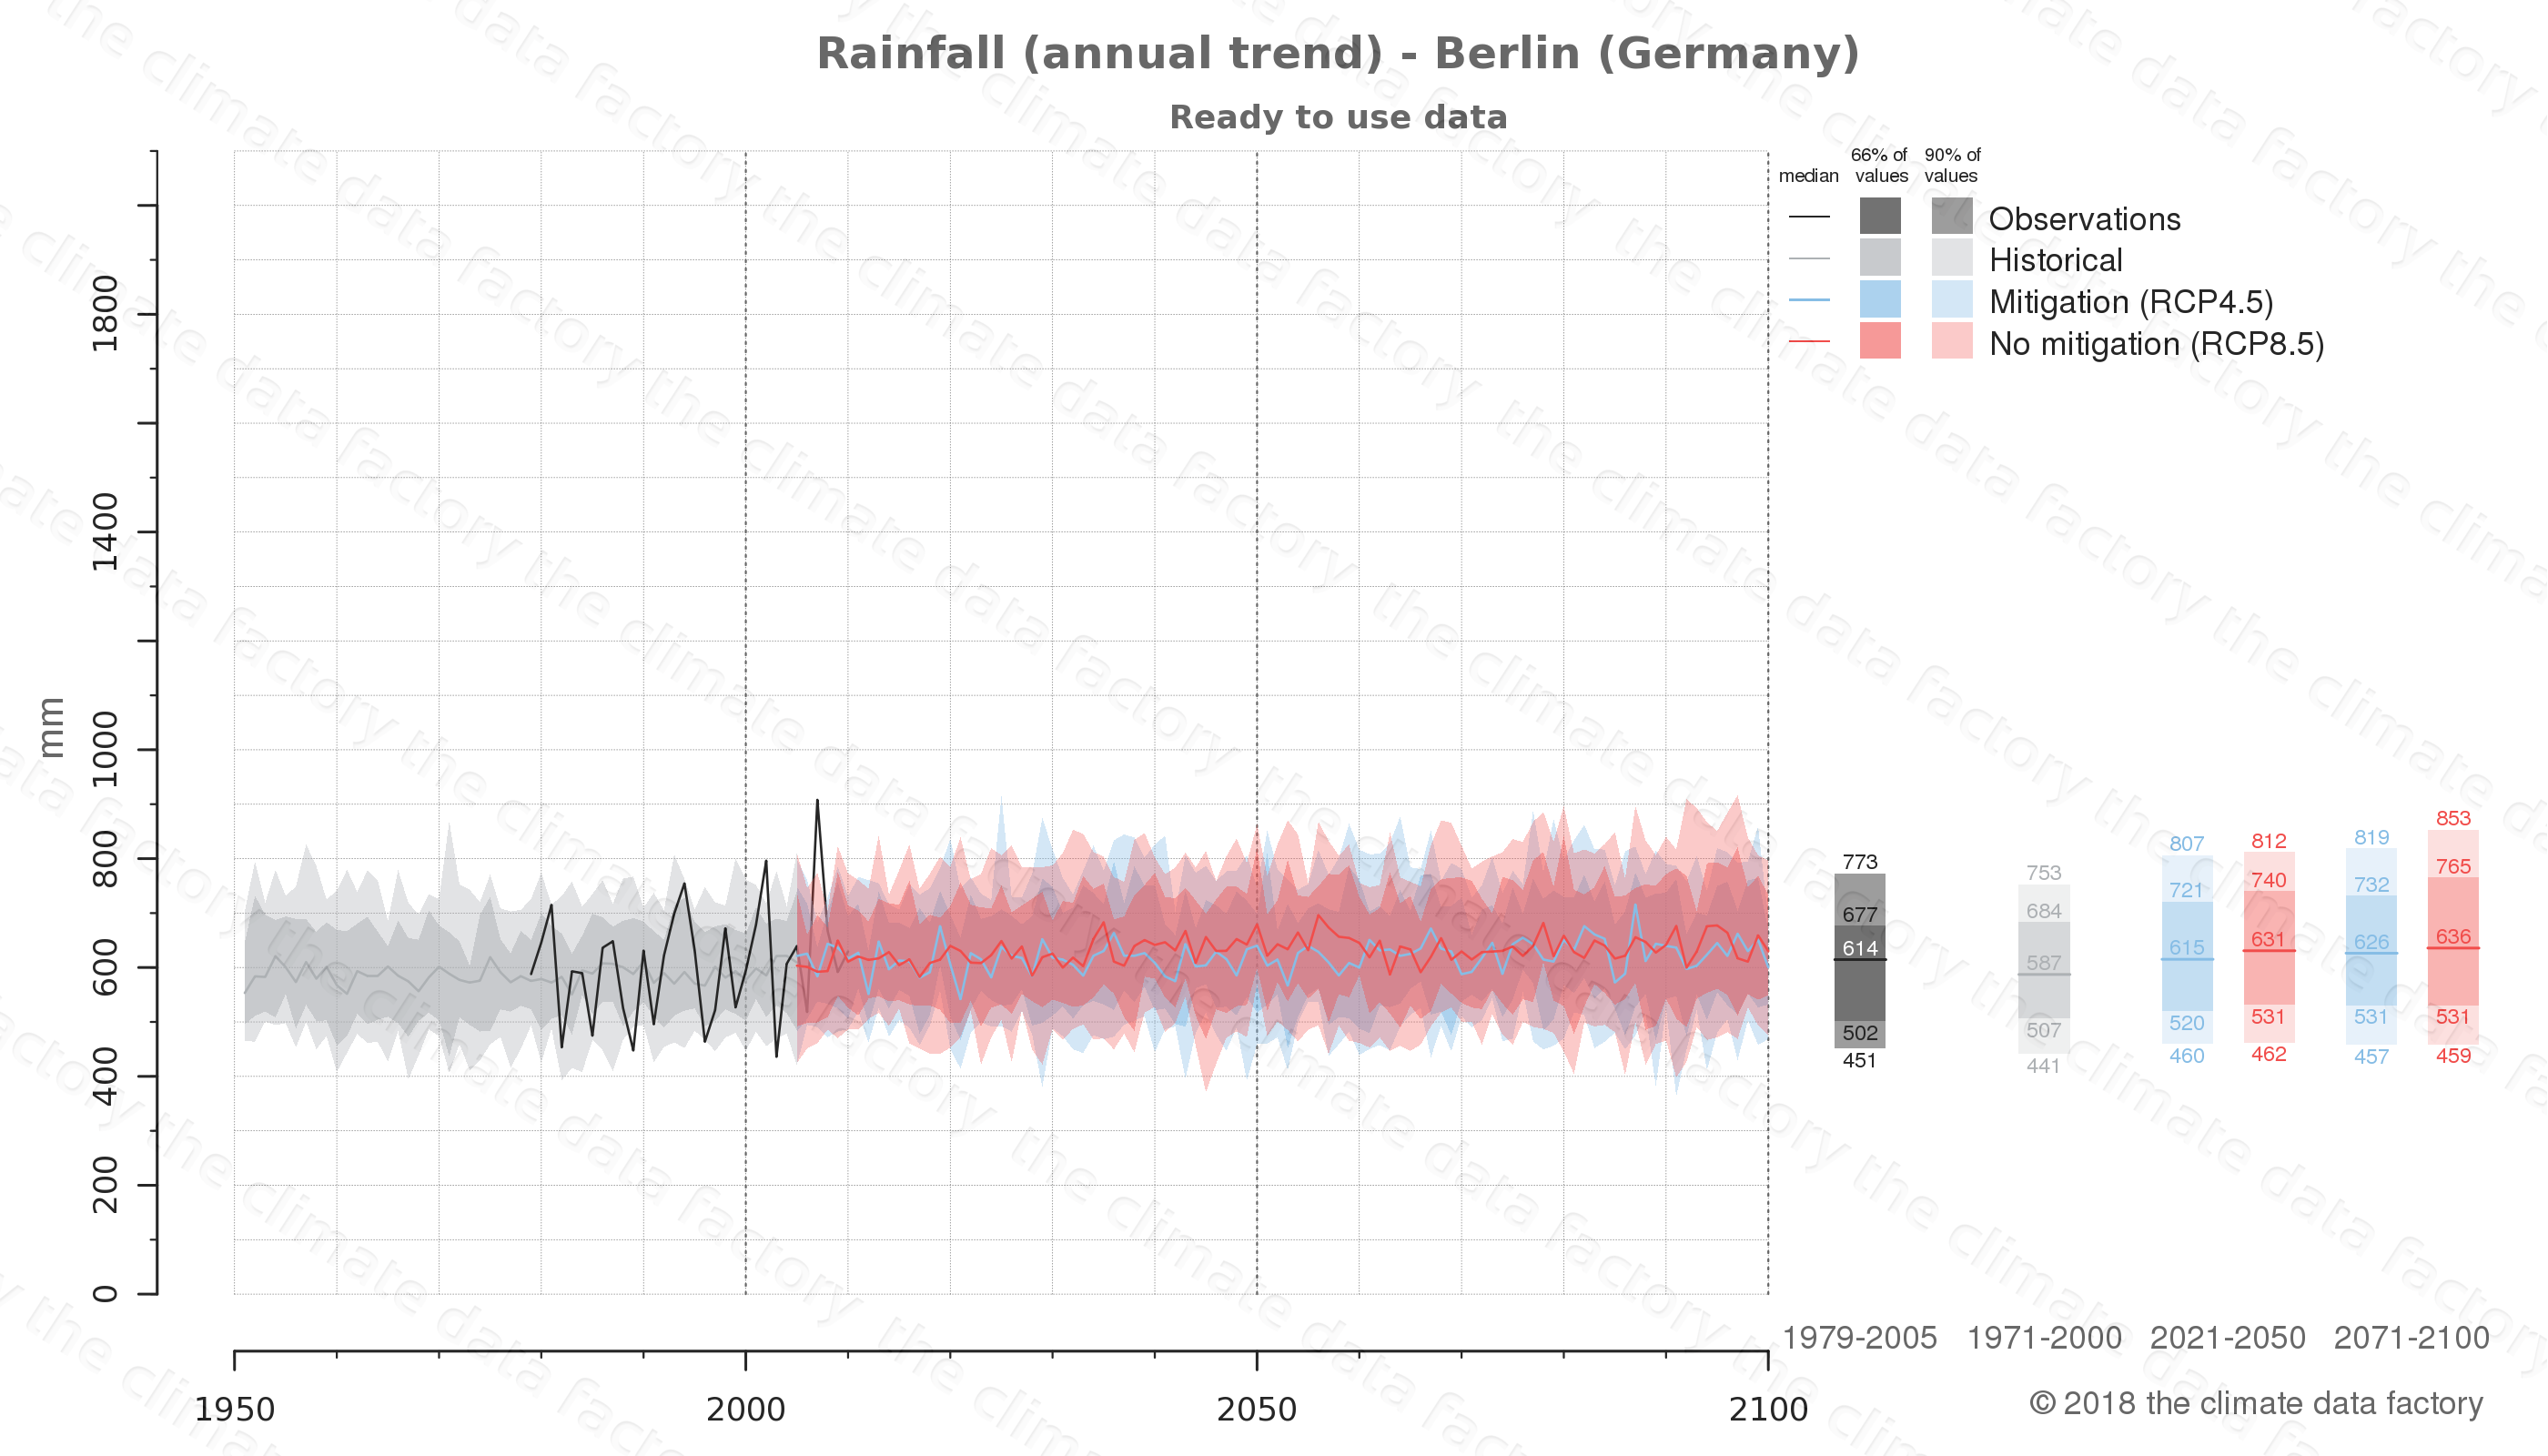 climate change data policy adaptation climate graph city data rainfall berlin germany